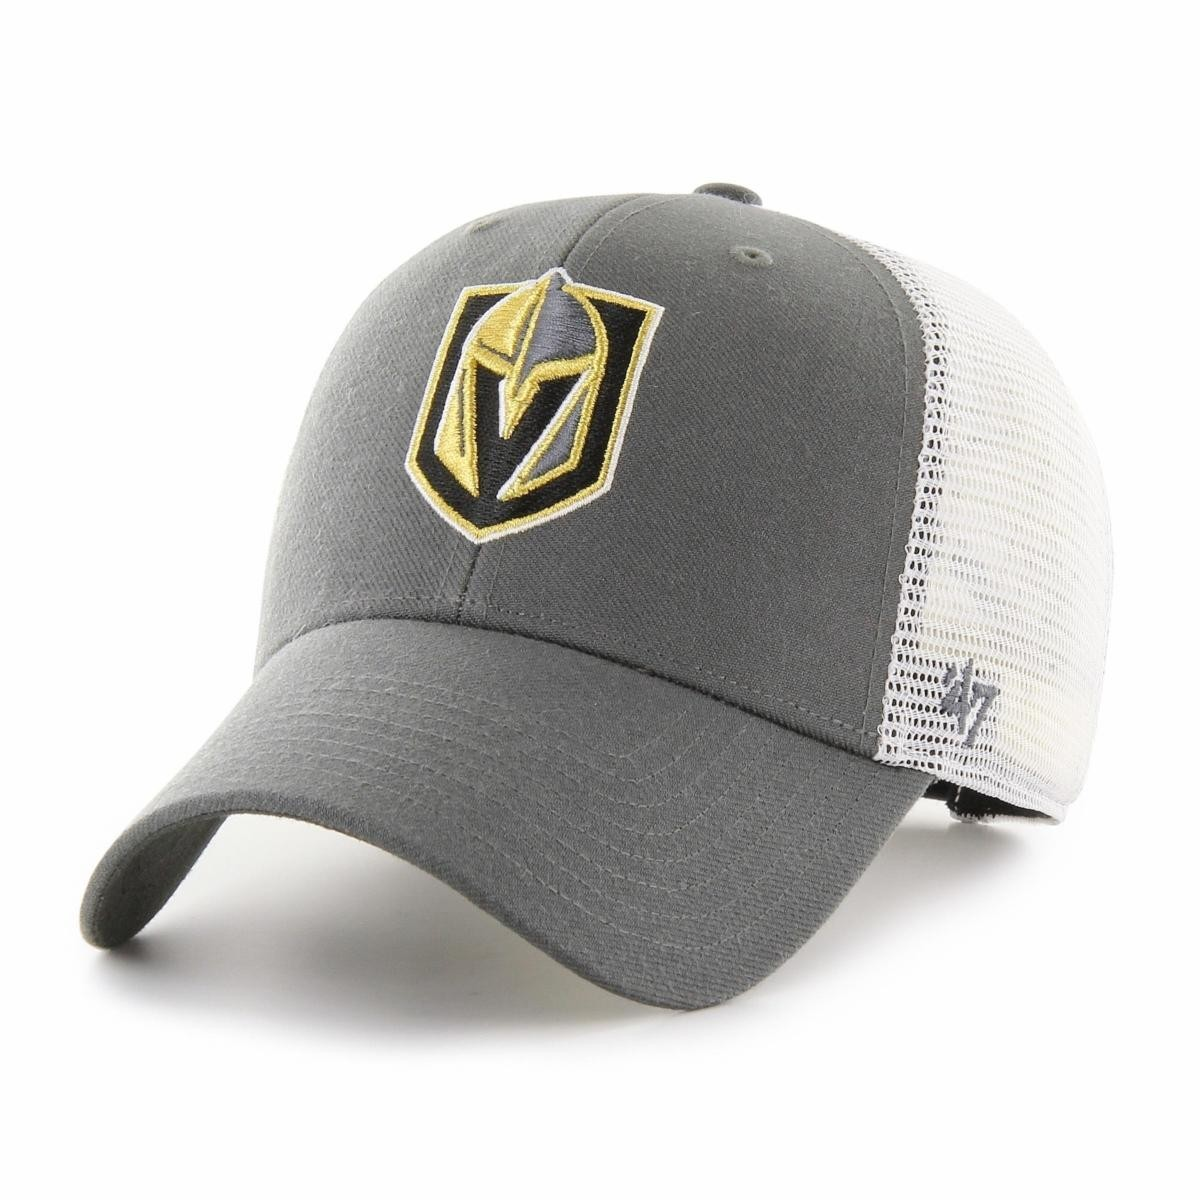 BRAND 47 Las Vegas Golden Knights Malvern MVP Adjustable Strapback